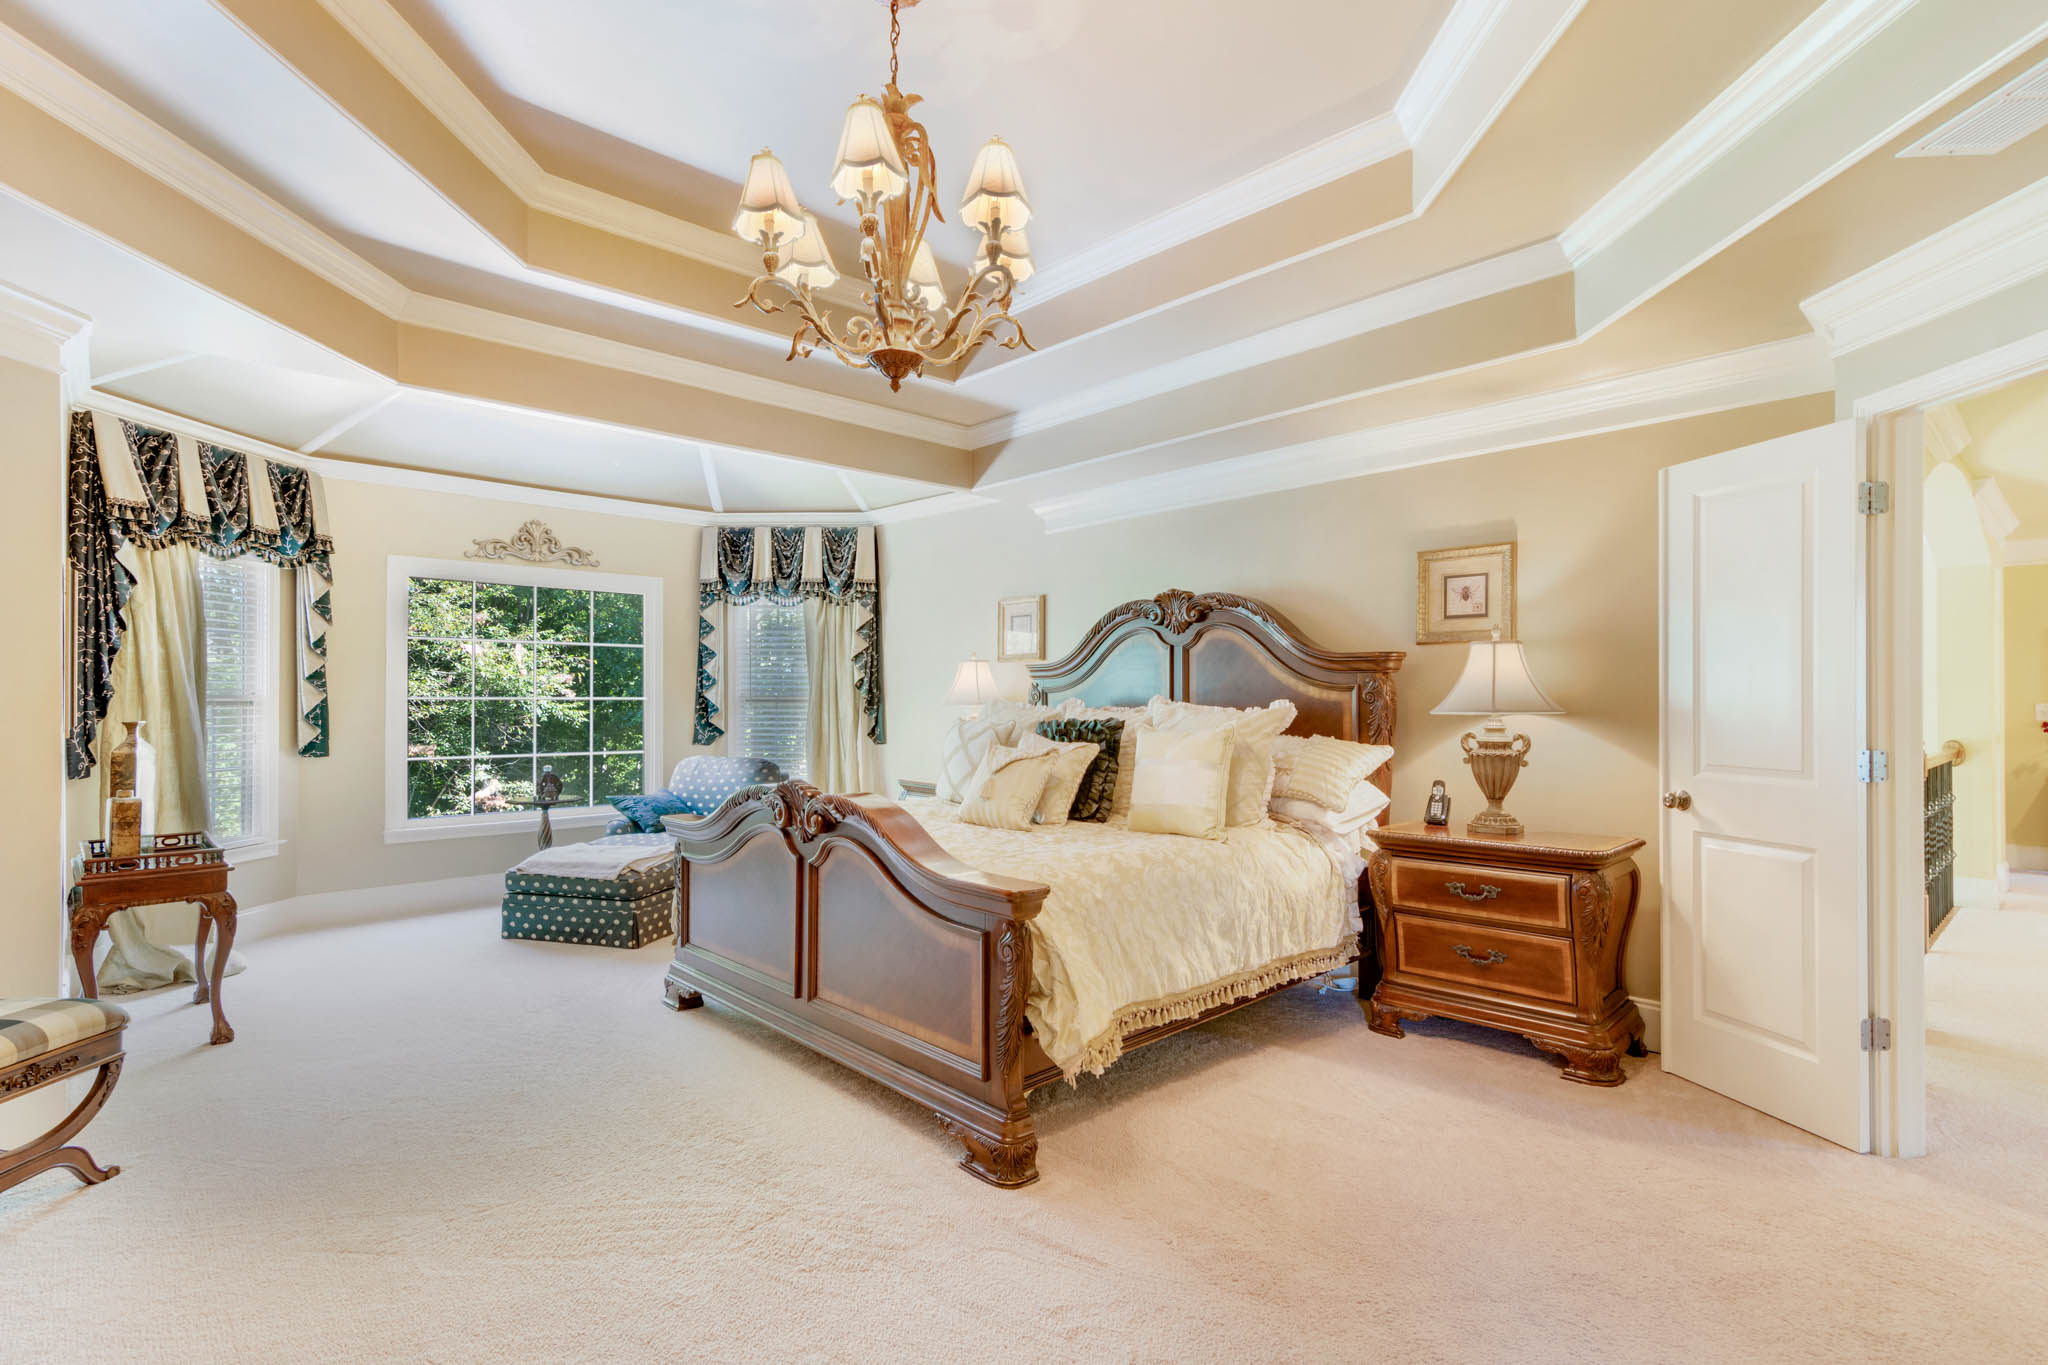 real_estate_photographer_bedroom_photography-2.jpg